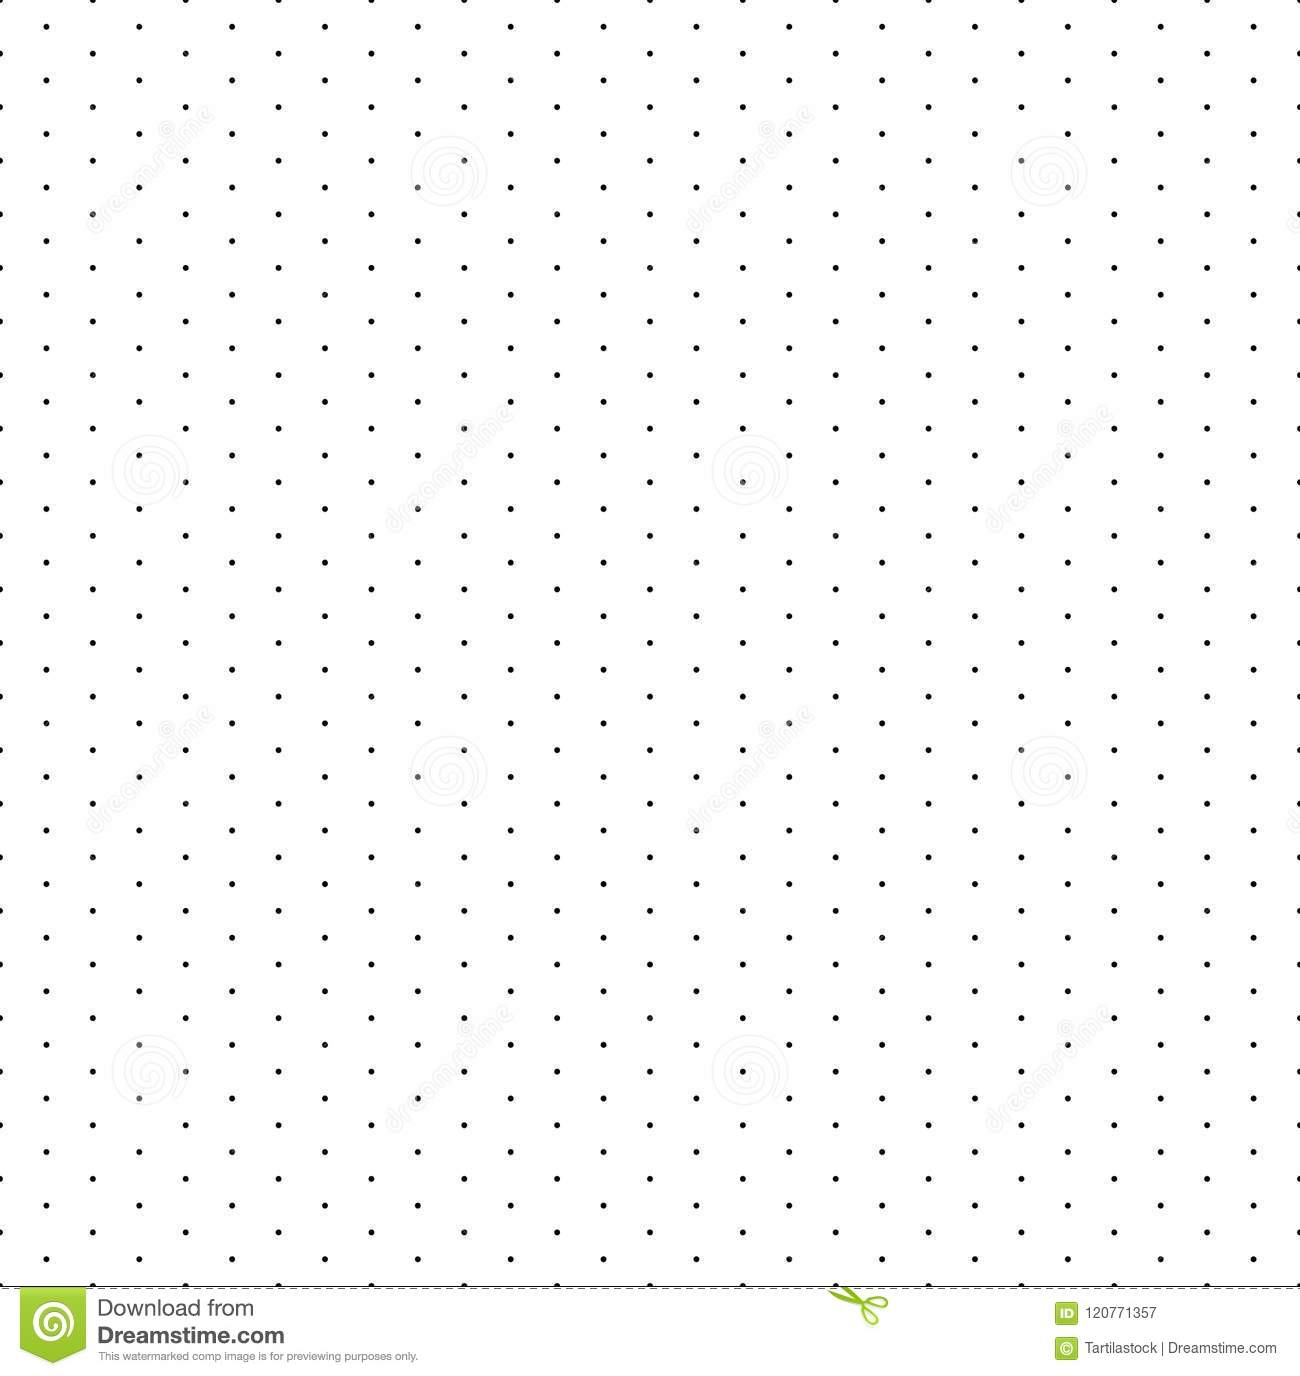 isometric dot paper shapes » 4K Pictures | 4K Pictures [Full HQ ...